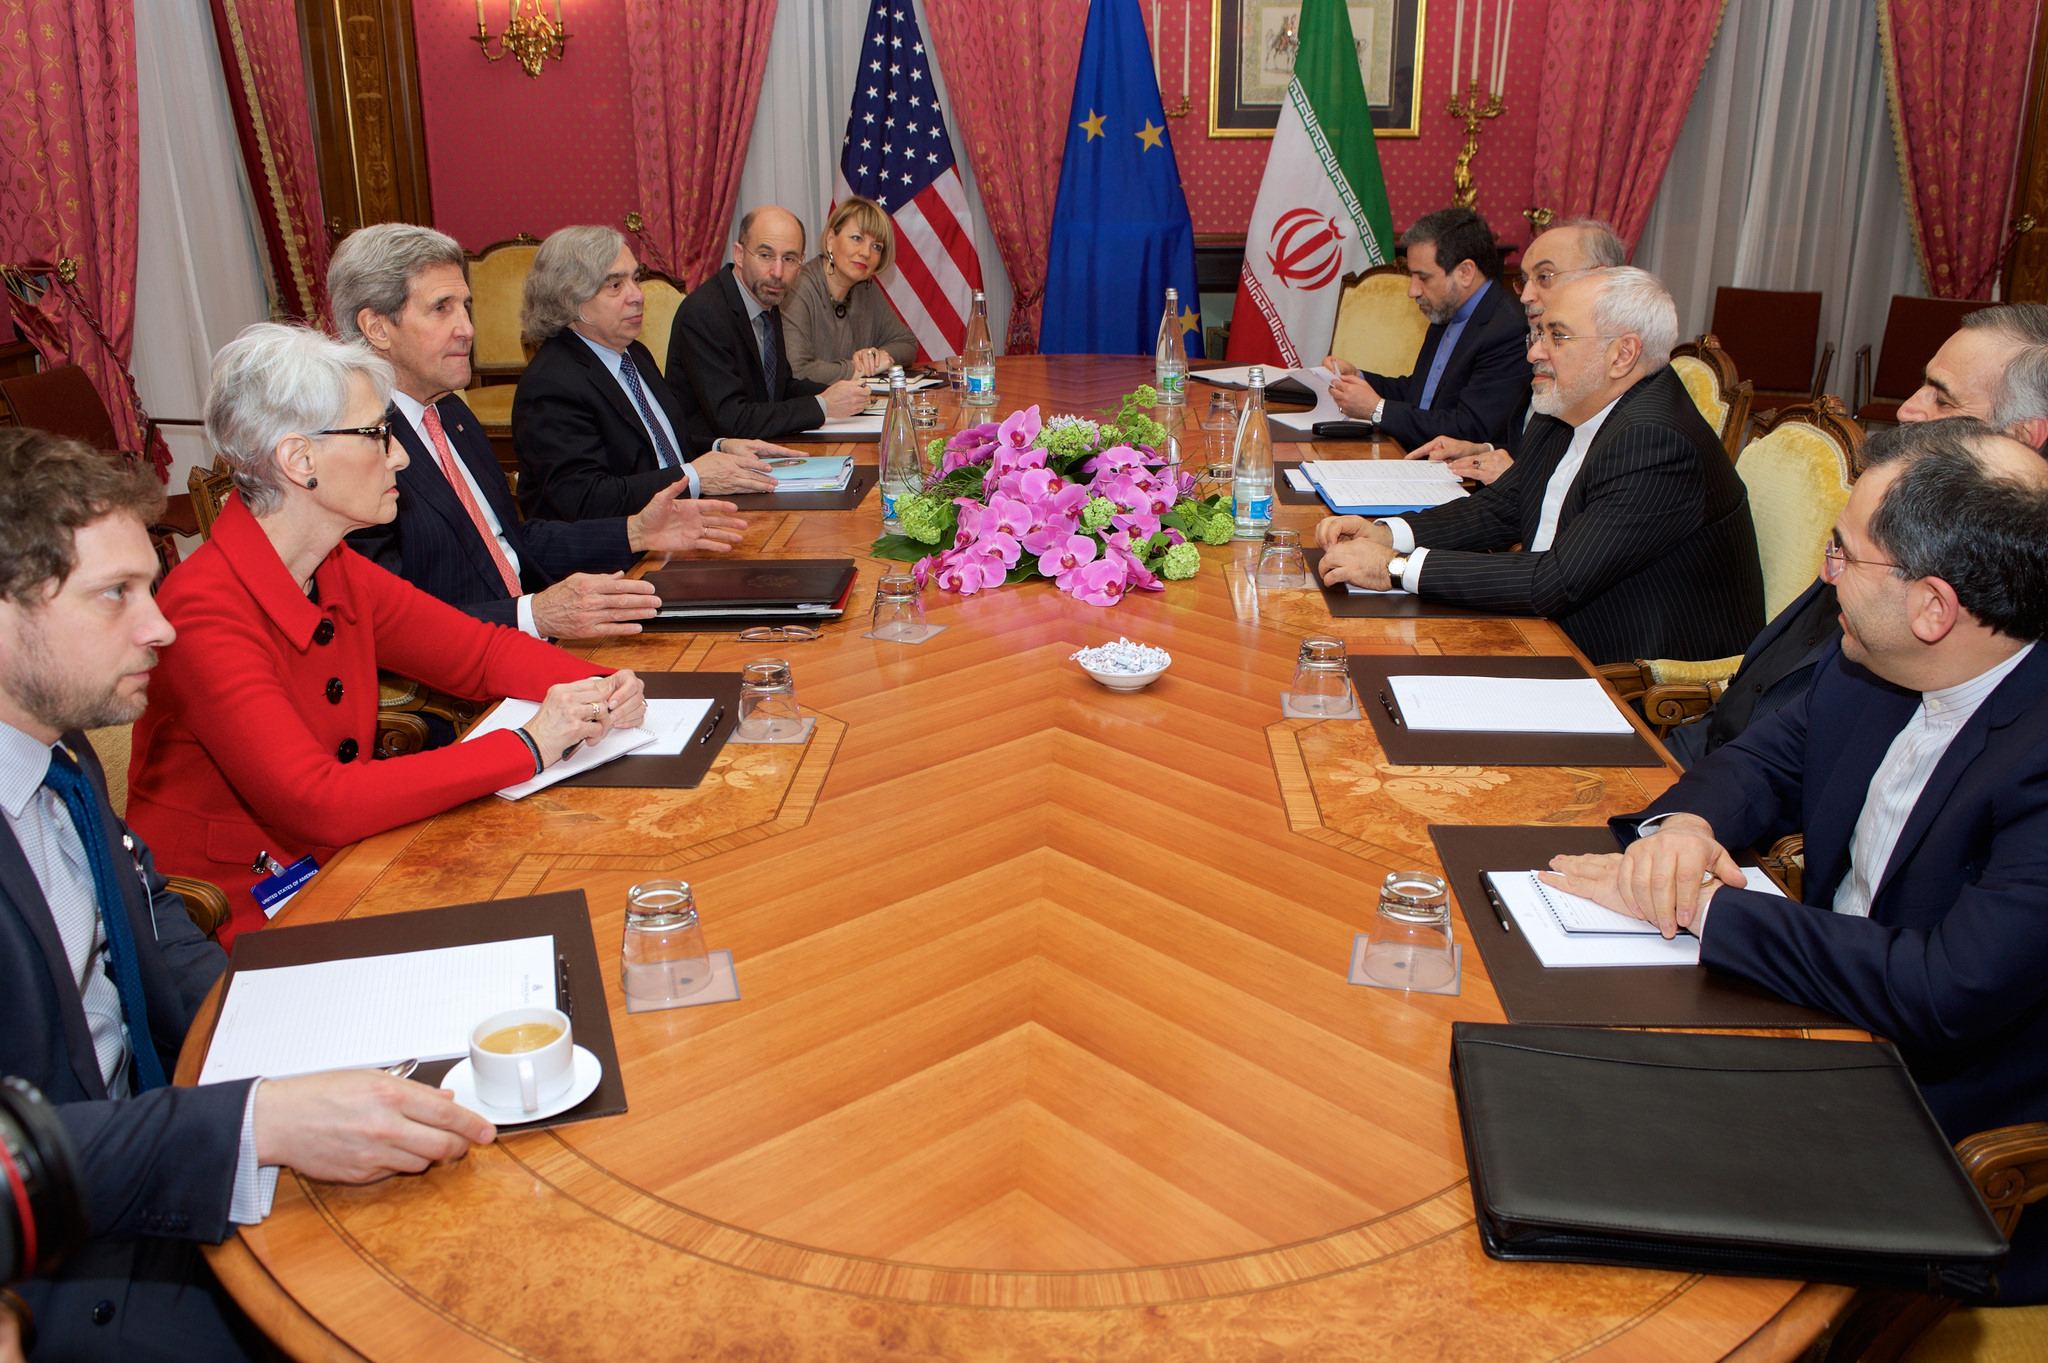 At the negotiating table in Lausanne, Switzerland. Photo from the US State Department